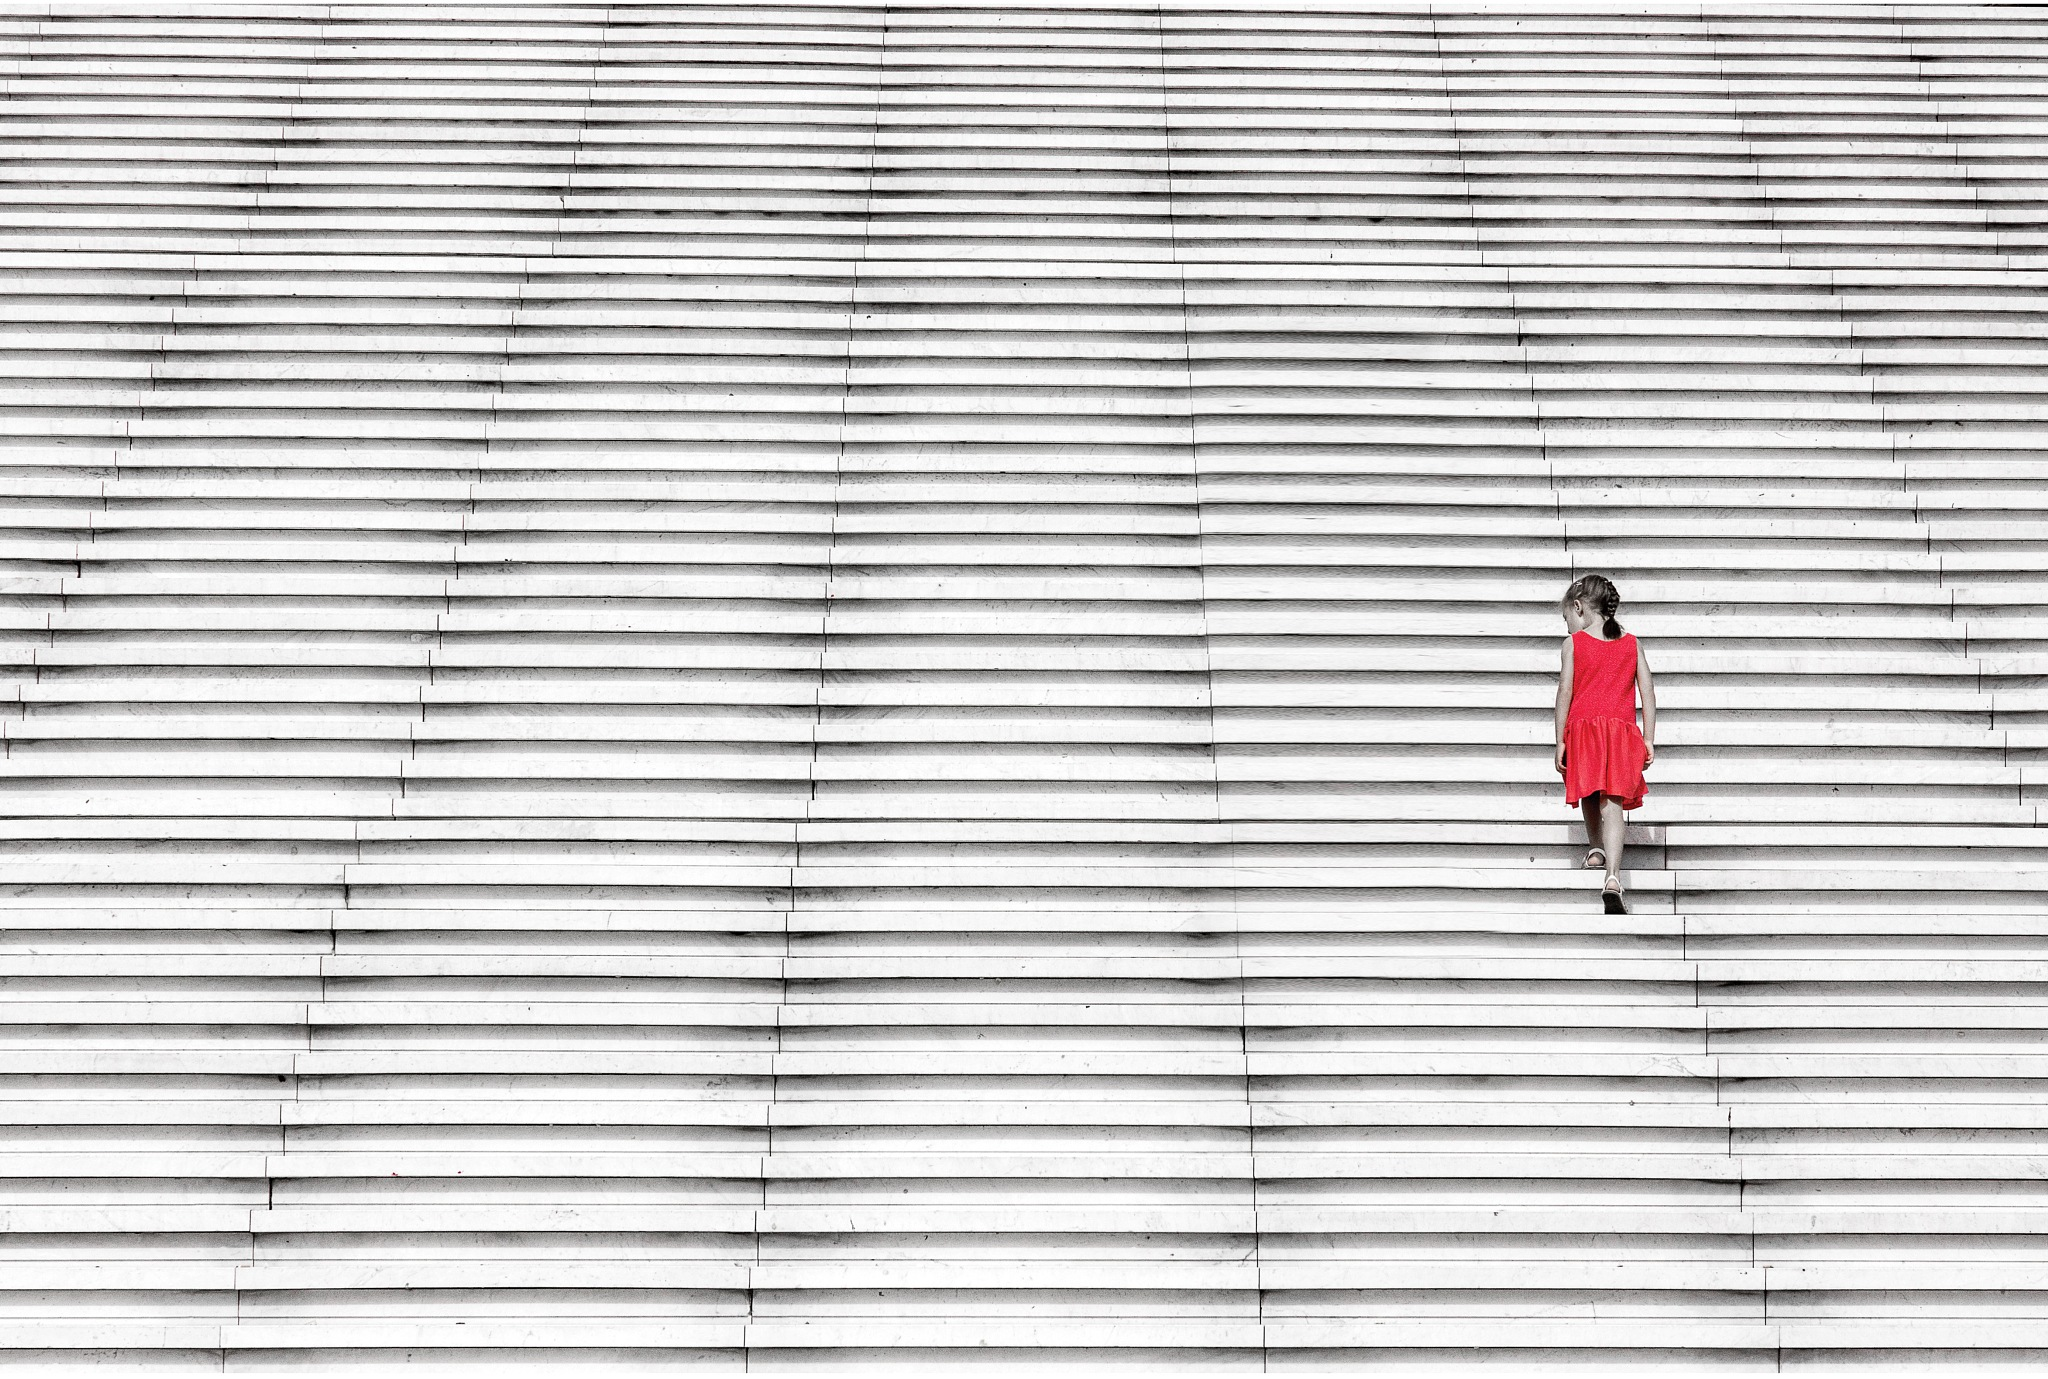 The girl in red ... 1 by ignacy50